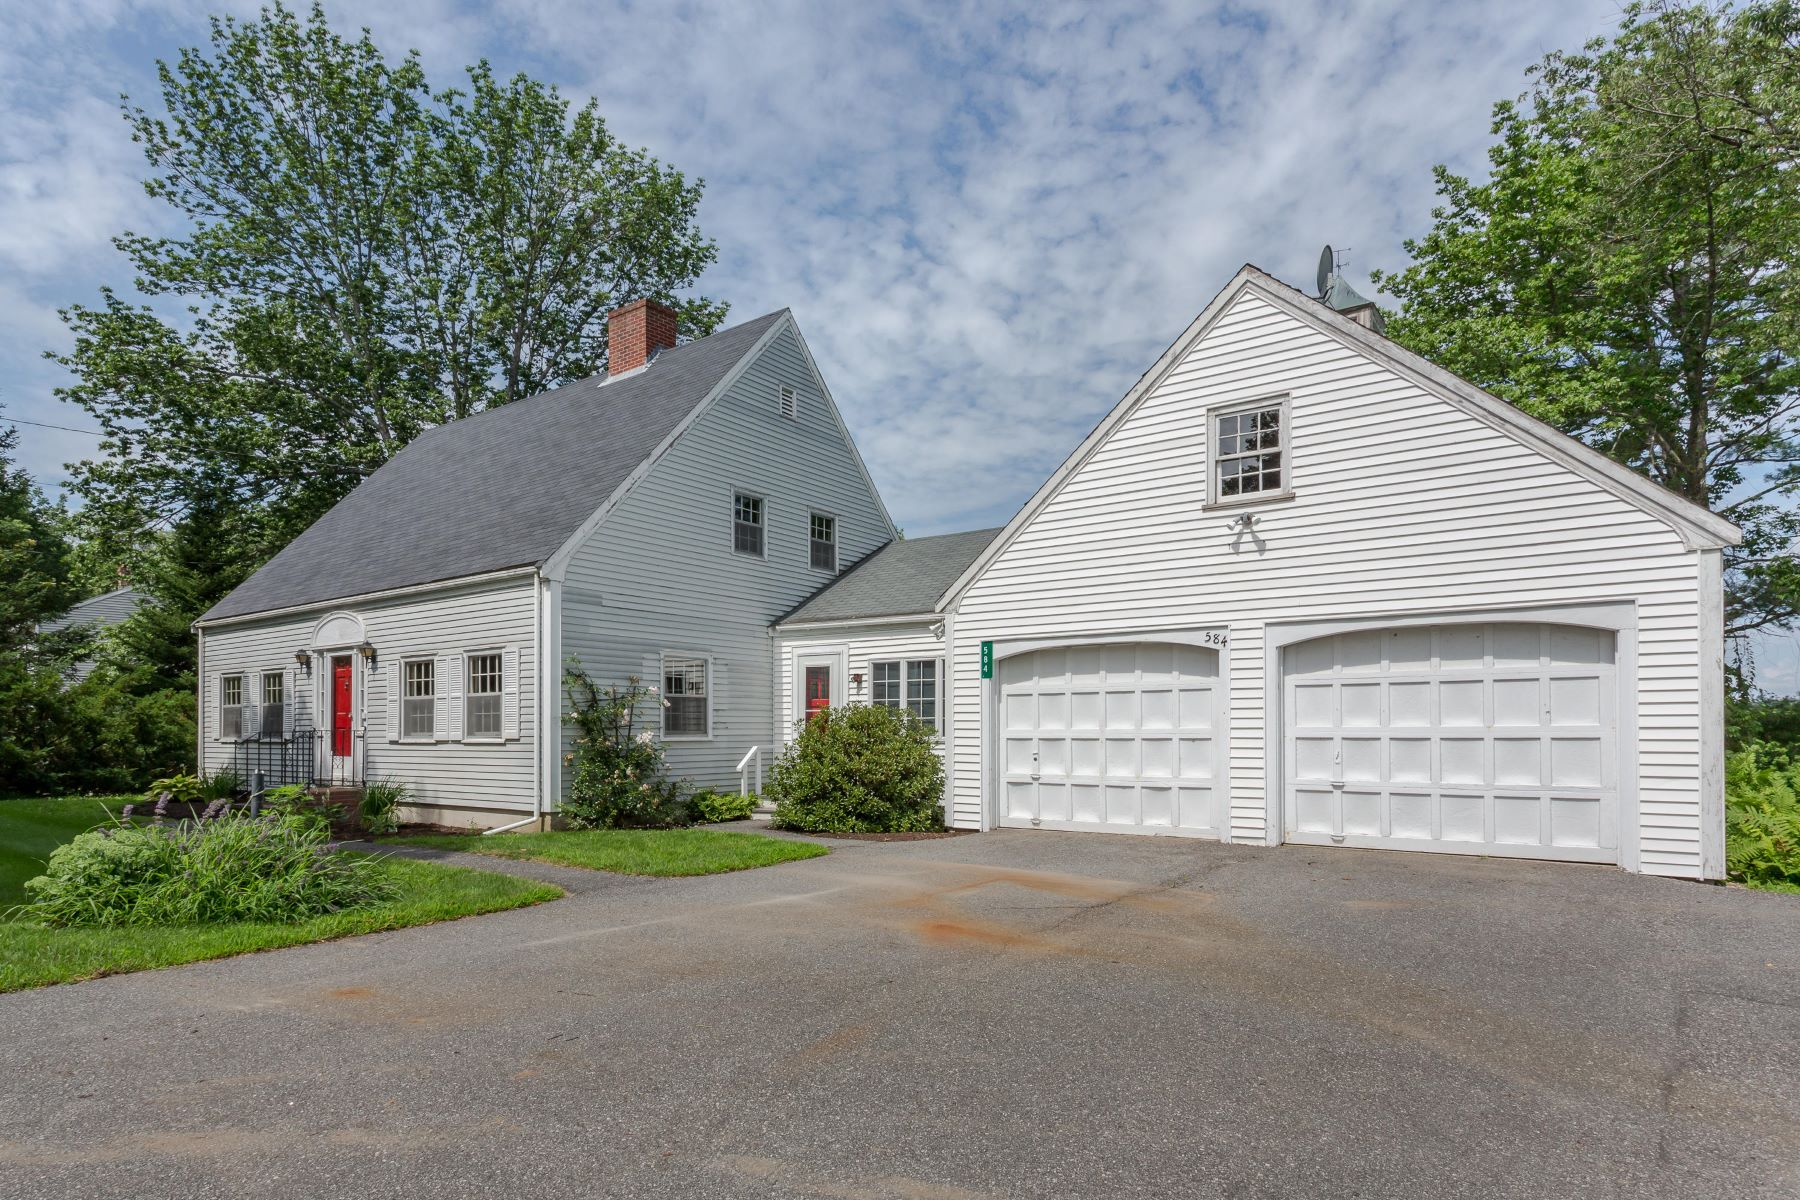 Single Family Homes for Active at 584 Main Street Damariscotta, Maine 04543 United States